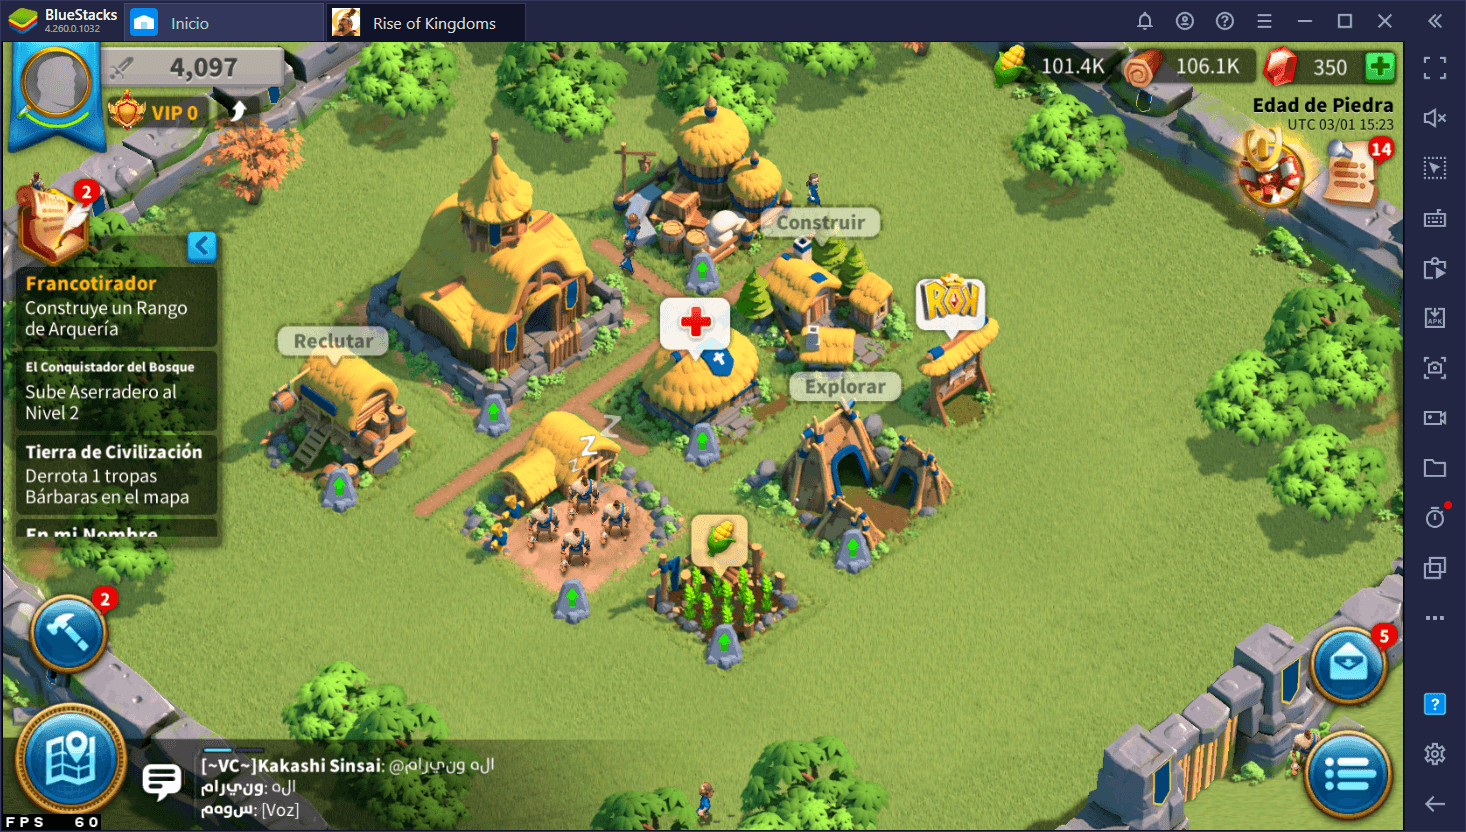 BlueStacks 5 Vs. BlueStacks 4 – Comparación de Desempeño Para Rise of Kingdoms